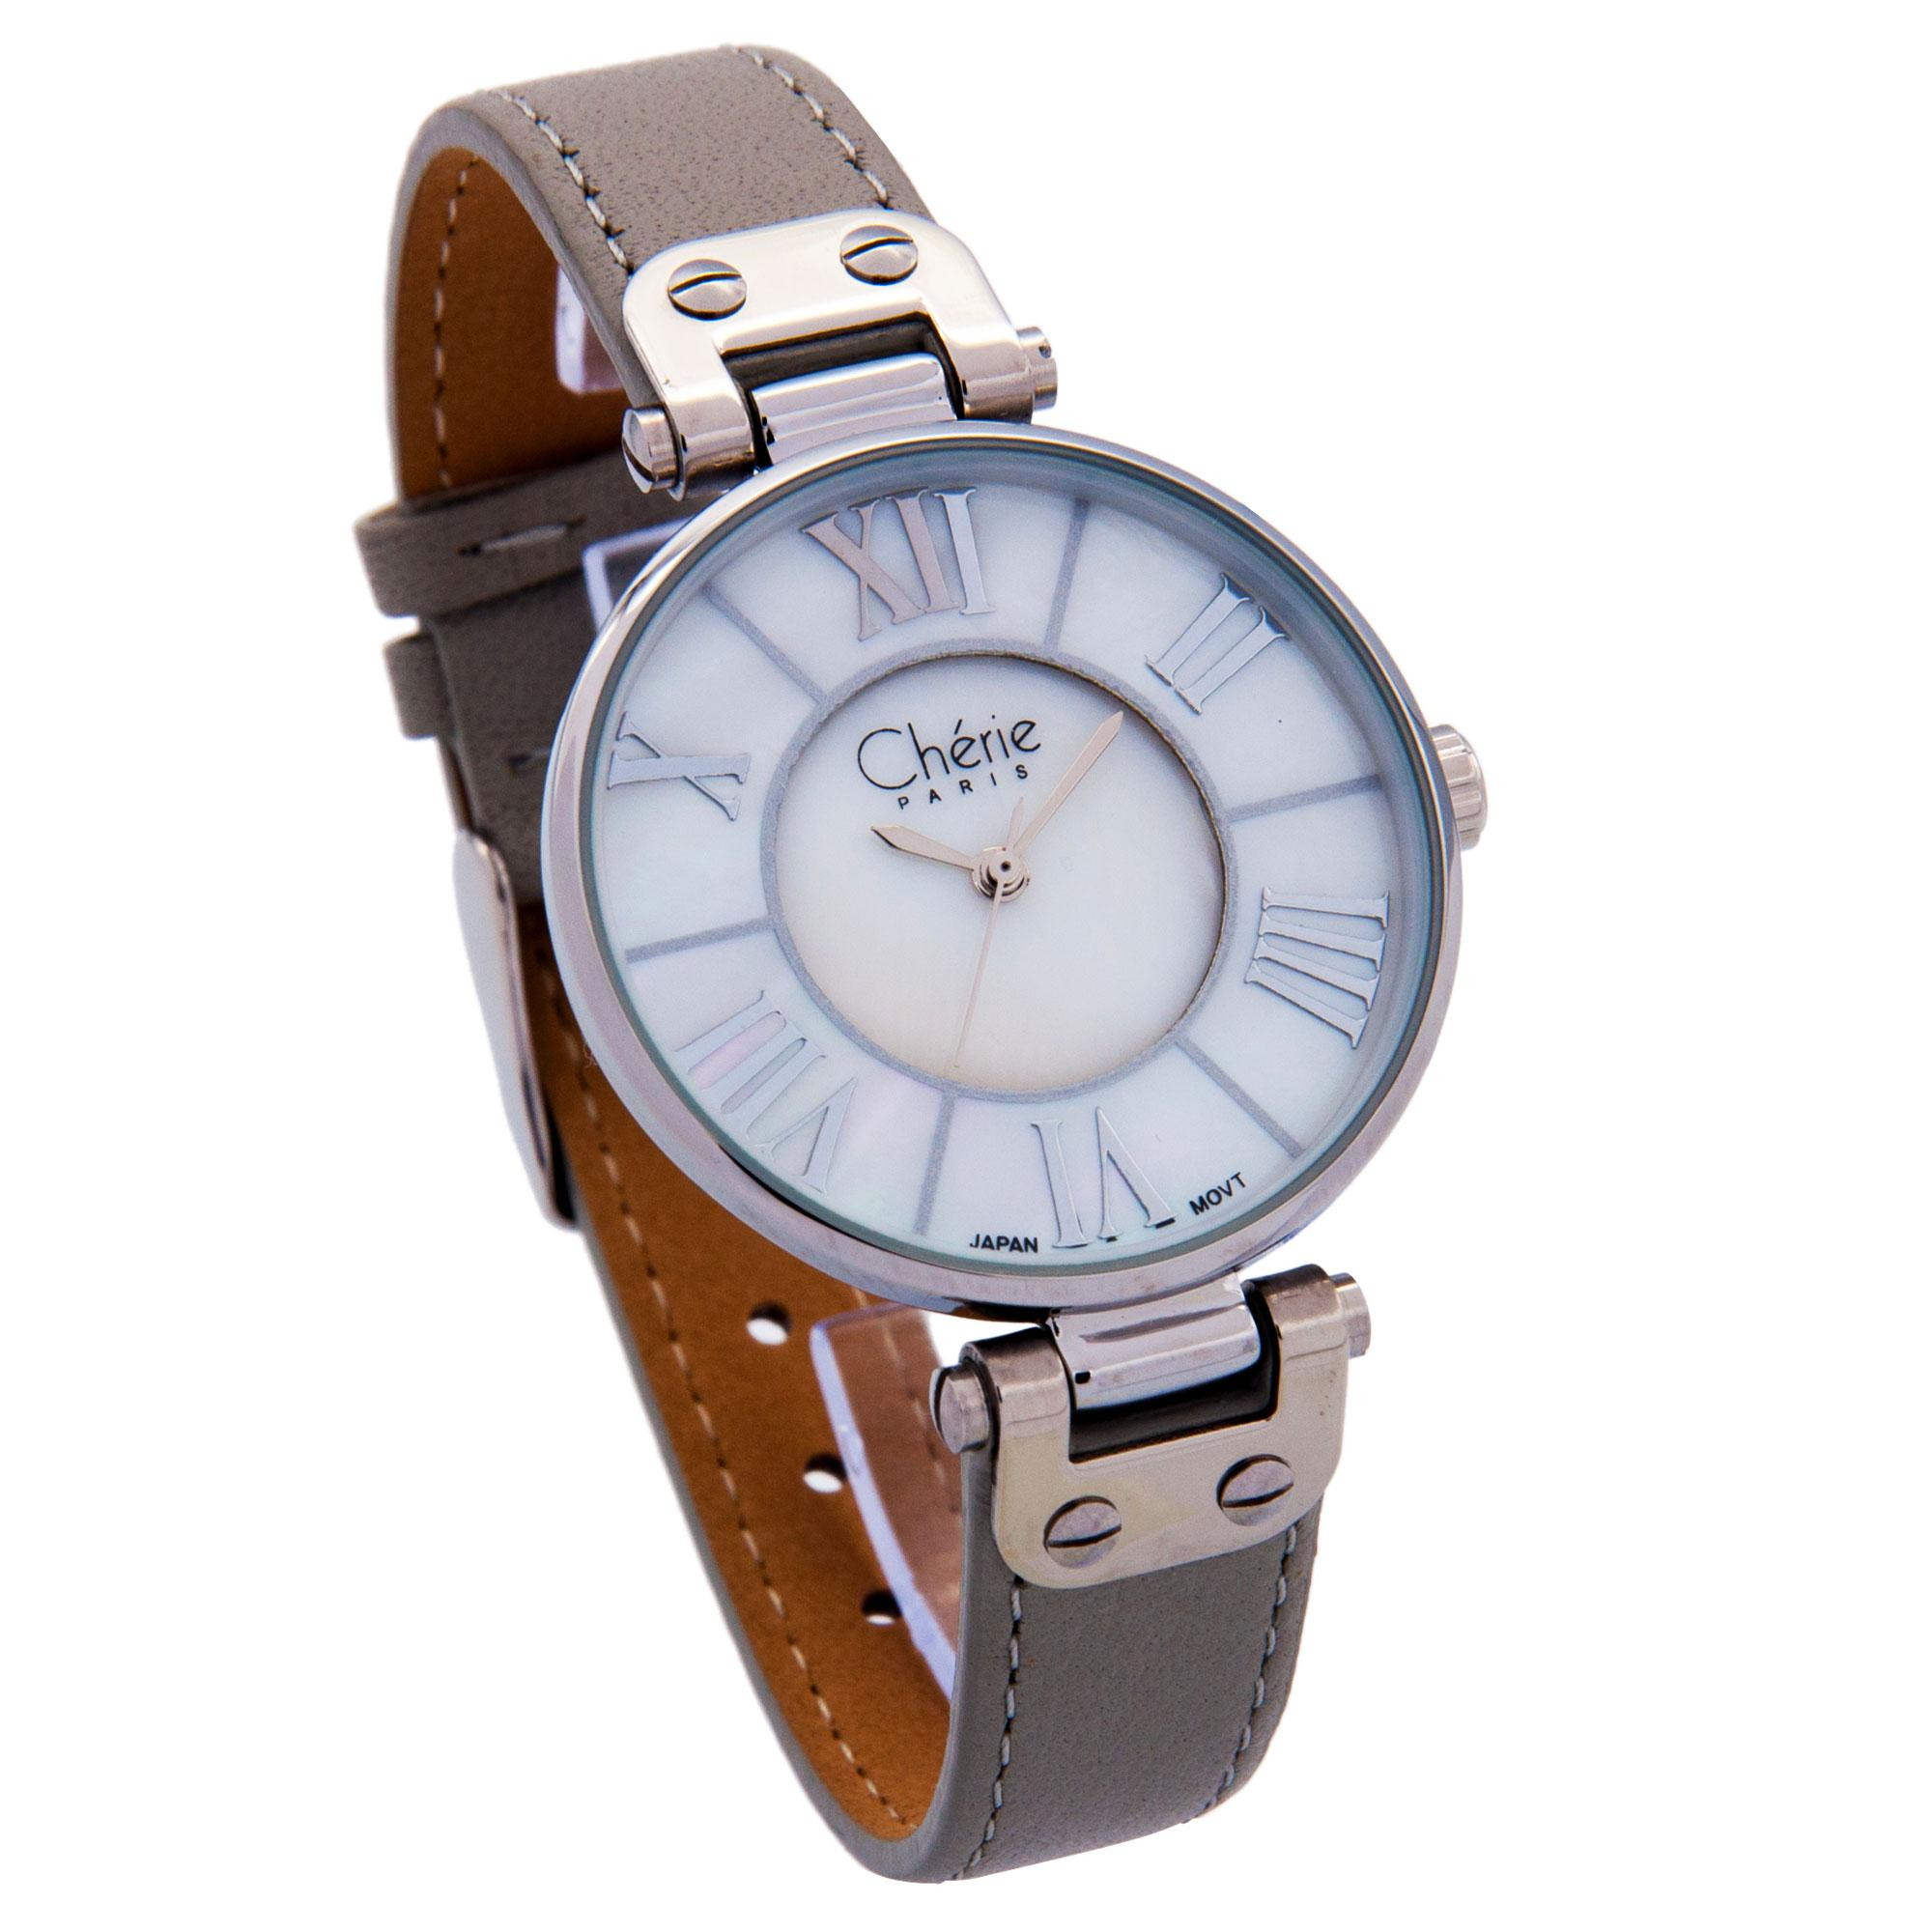 Cherie Paris Lisa Women Leather Strap Analog Watch CHR-1741 (Fashion Collection)